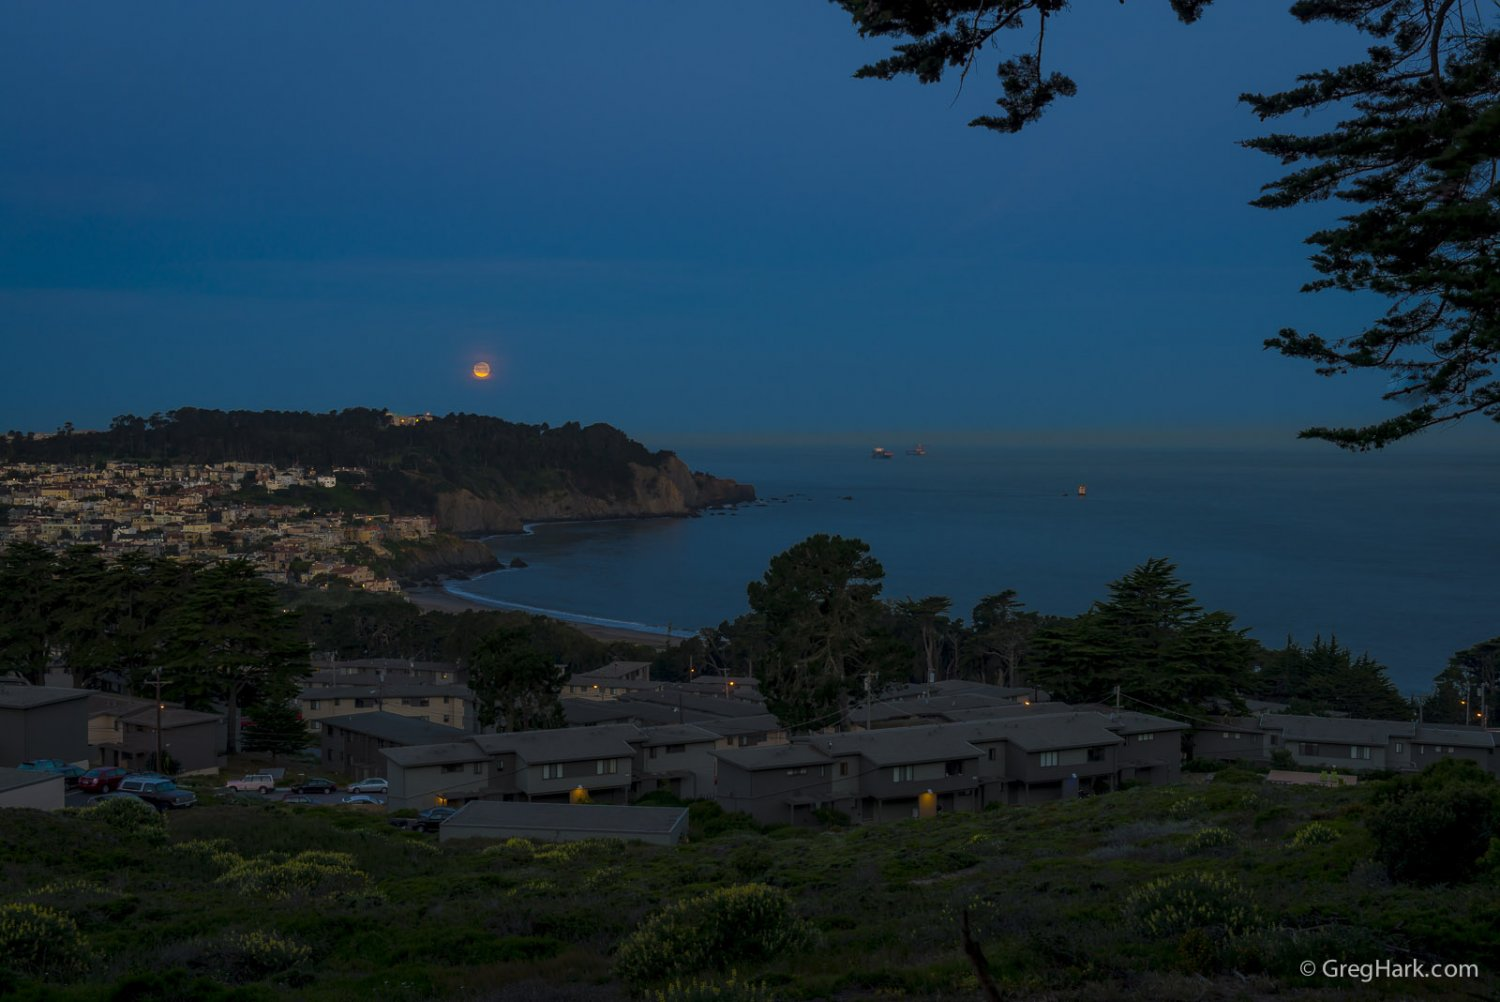 Presidio San Franscisco Moon and Land's End San Franscisco Moon Over The Presidio San Francisco, CA